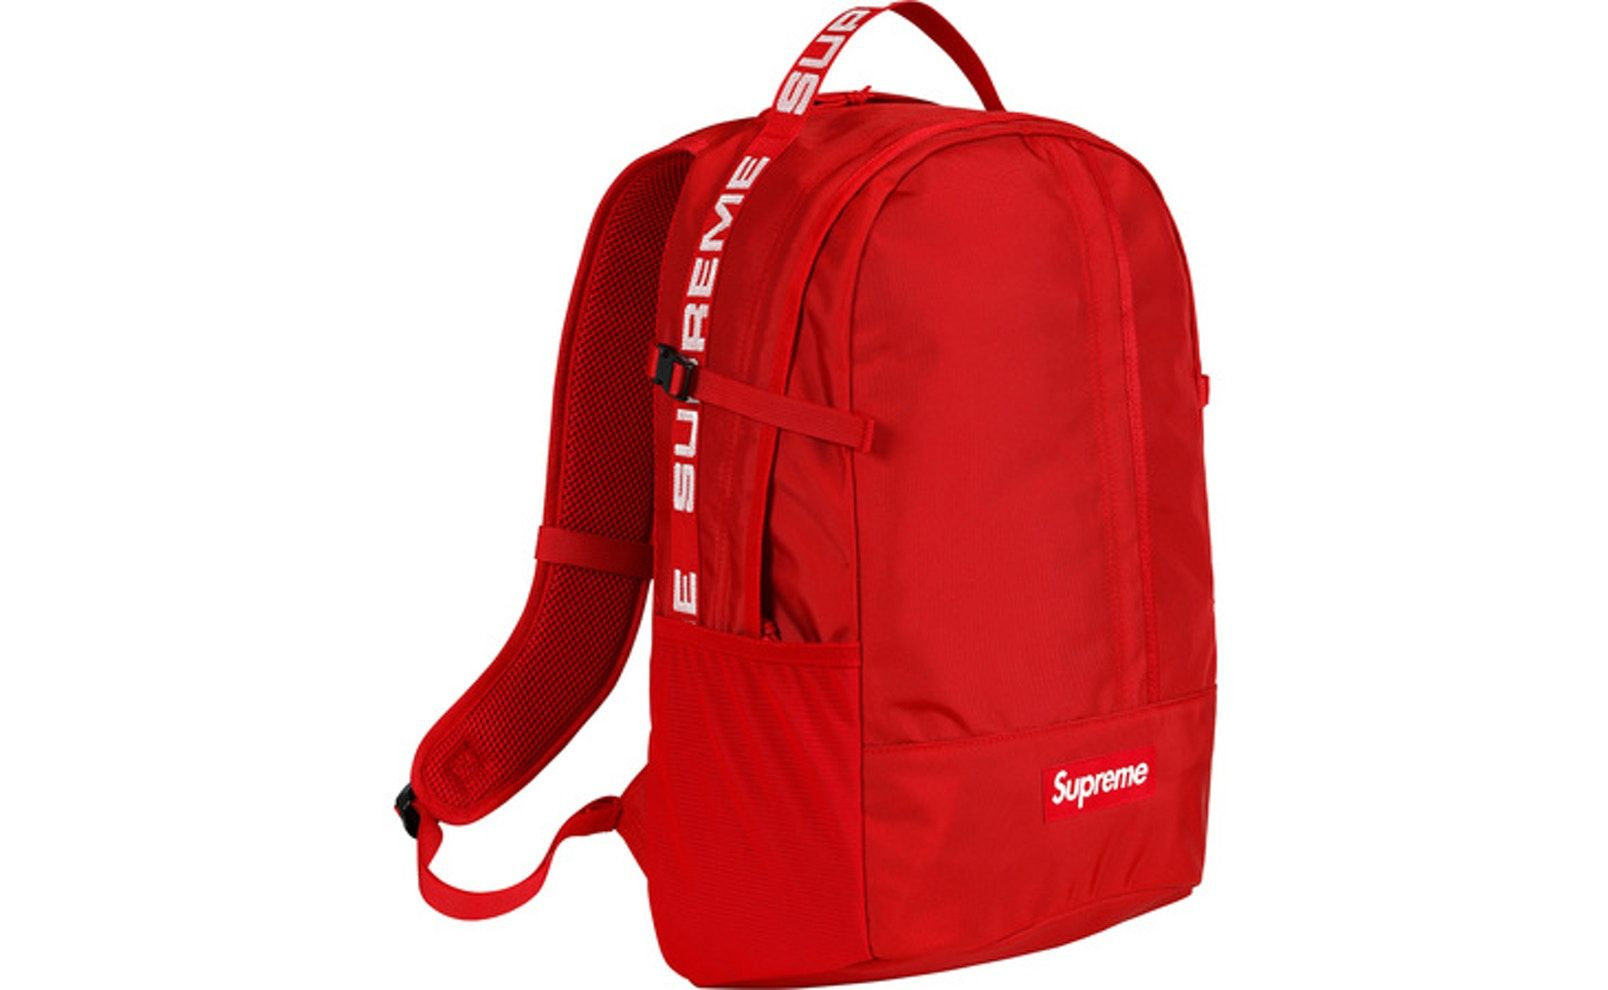 af874940311e Check out the Supreme Backpack (SS18) Red available on StockX ...